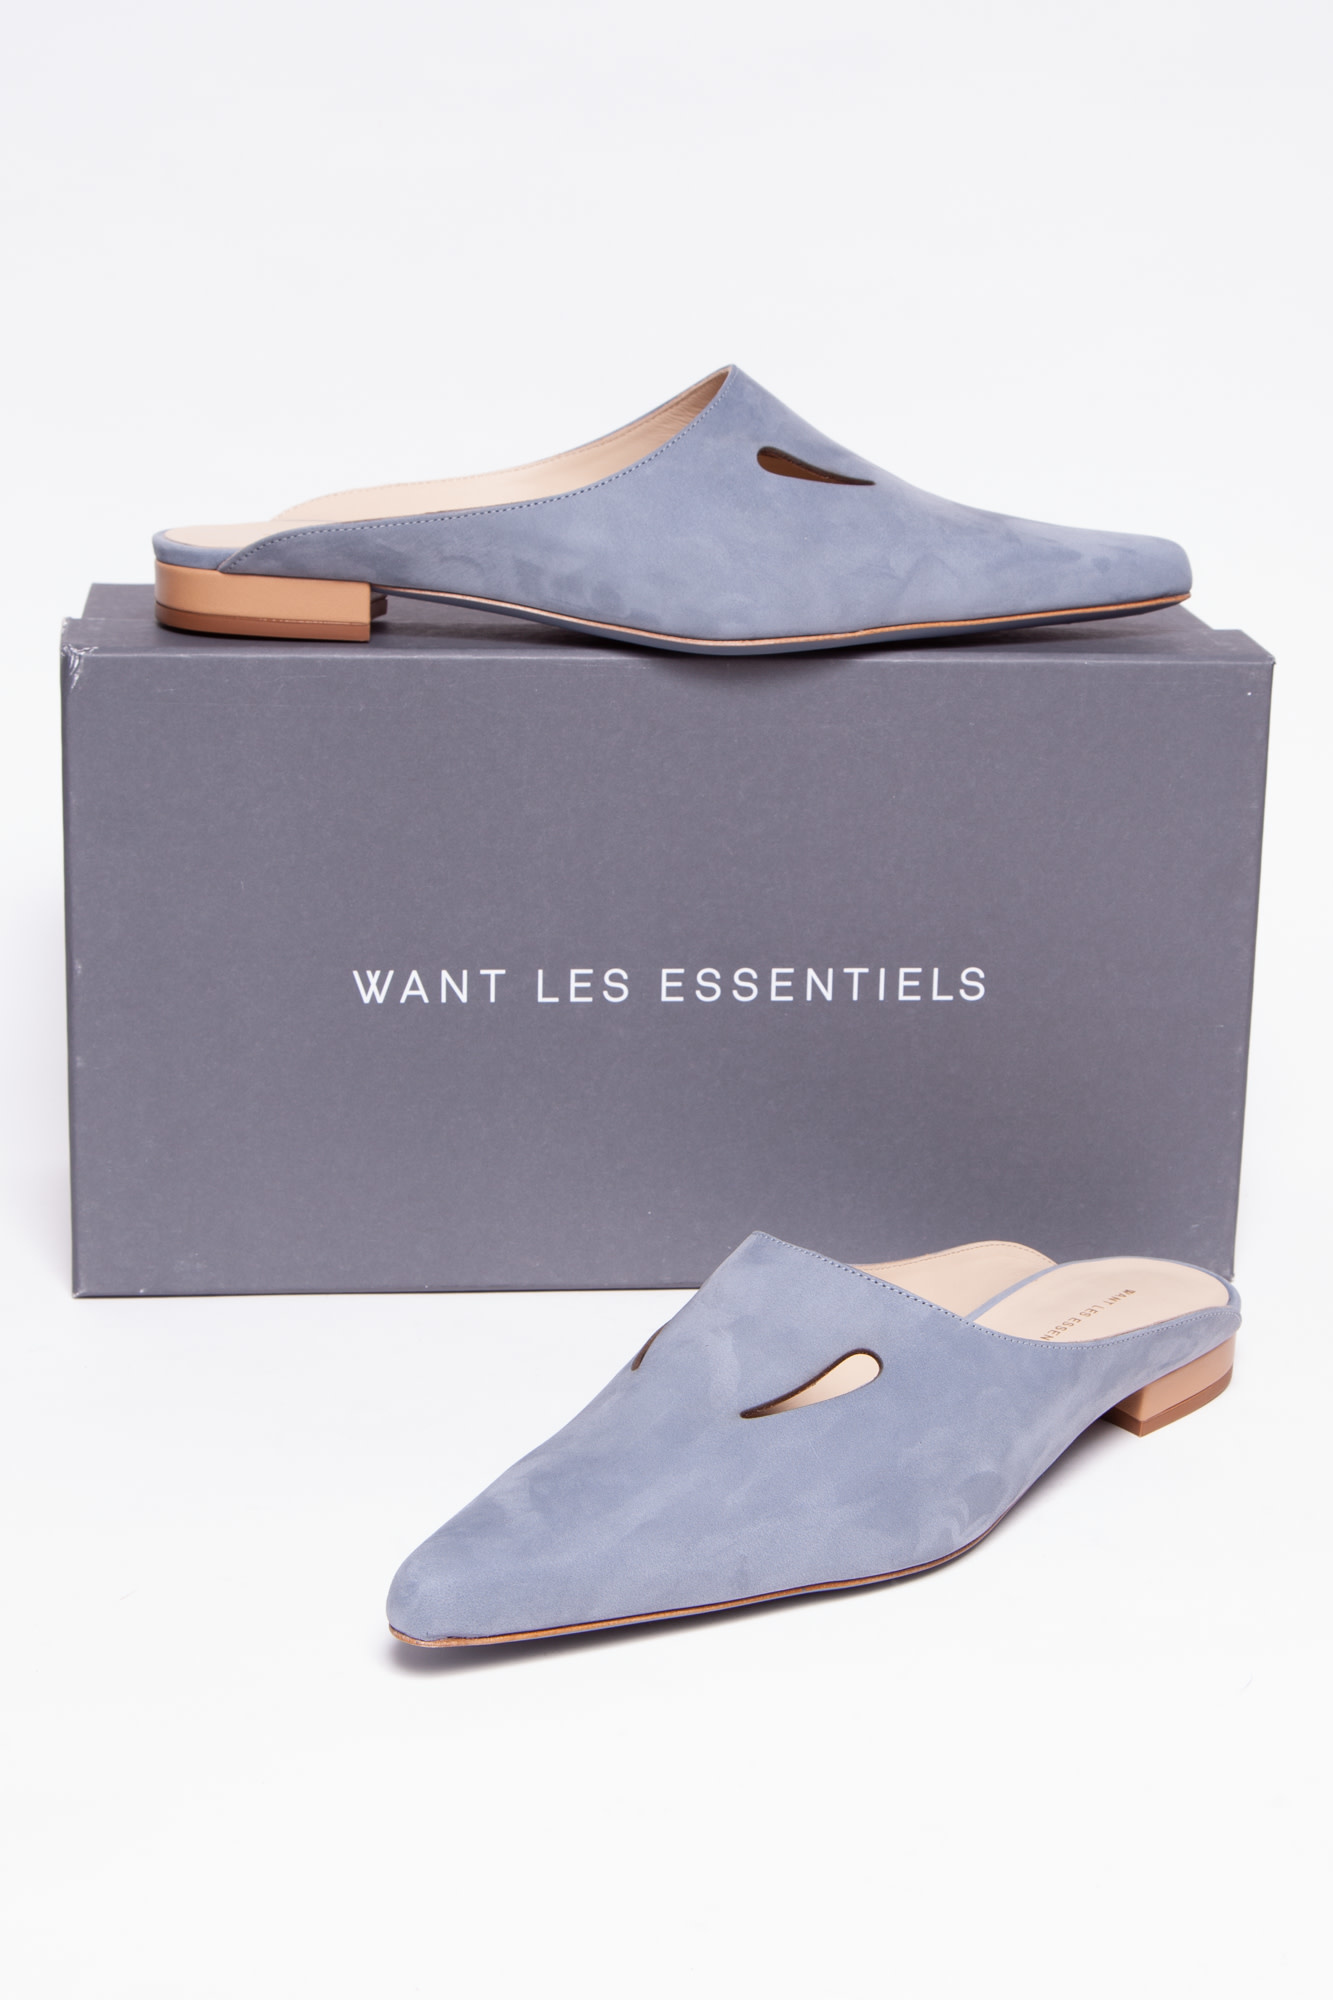 WANT Les Essentiels BLUE SUEDE MULES - NEW